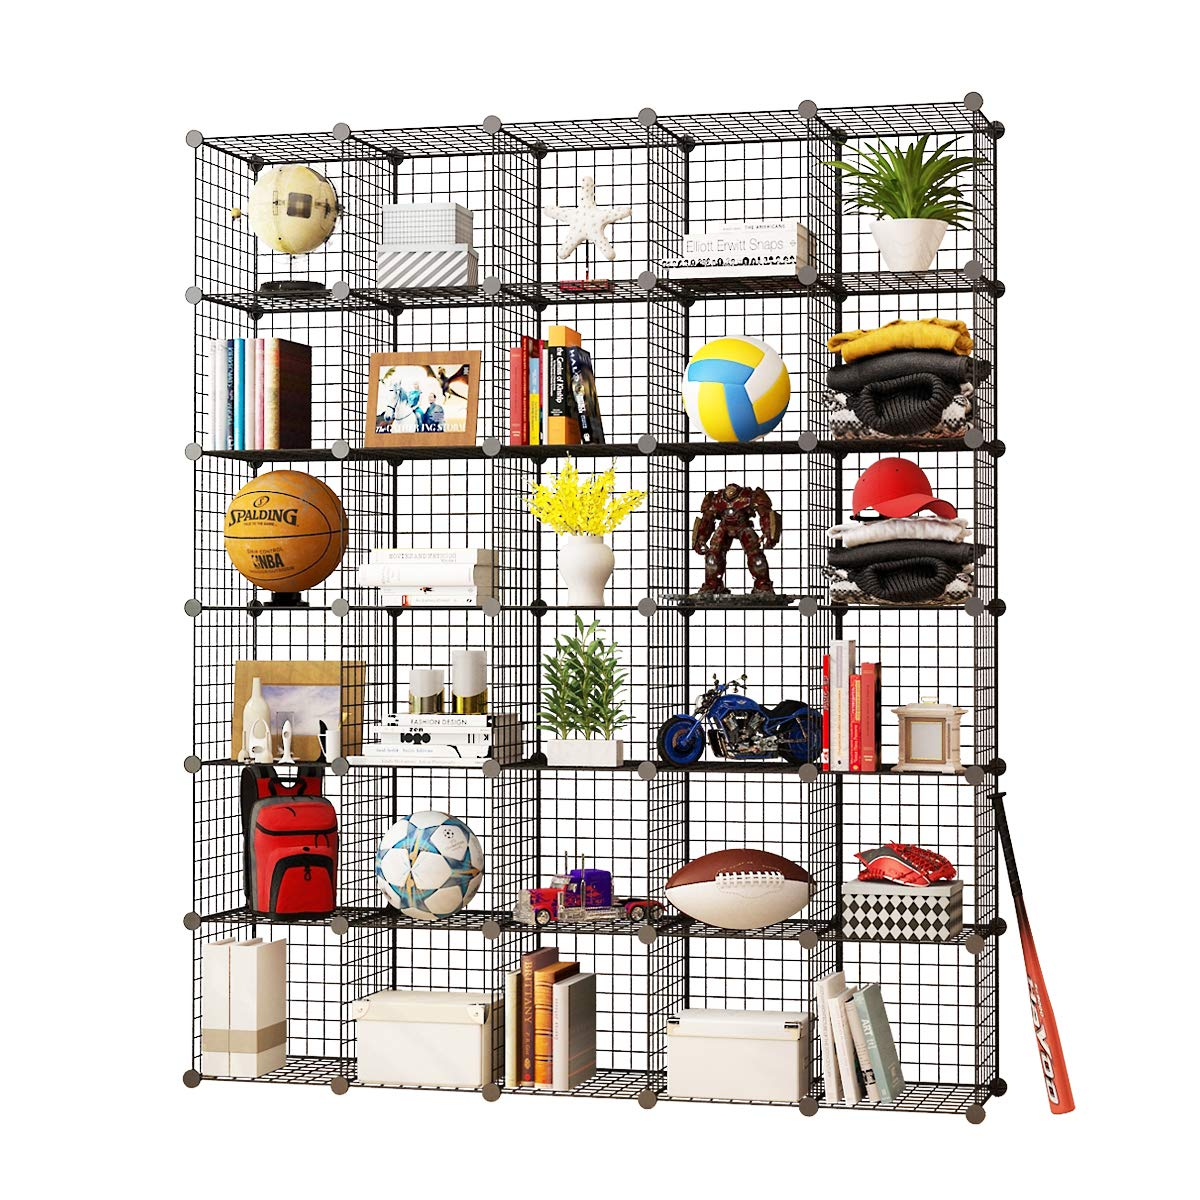 KOUSI Storage Cubes Wire Grid Modular Metal Cubbies Organizer Bookcases and Book Shelves Origami Multifunction Shelving Unit, Capacious Customizable (Black, 30 Cubes) by KOUSI